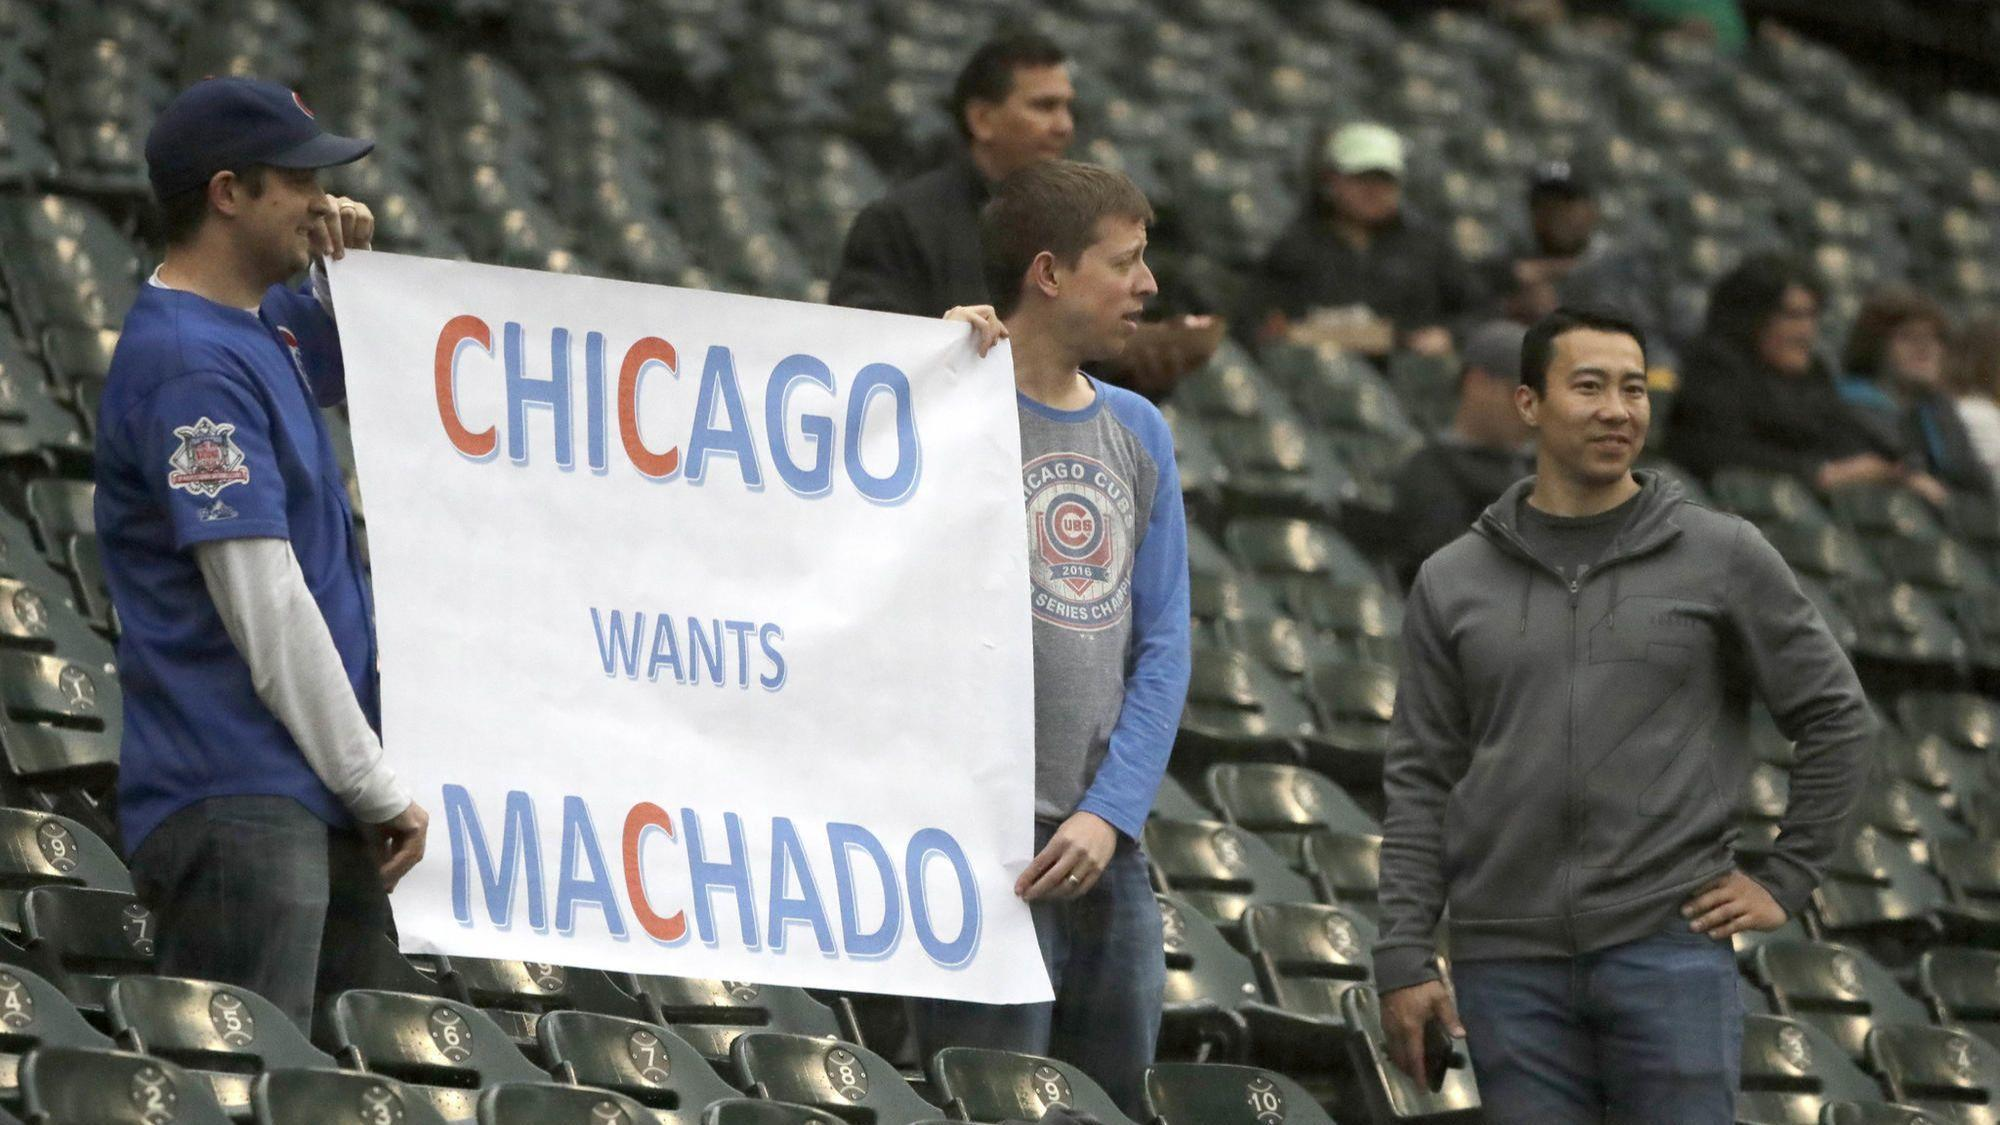 Orioles teammates play along as Machado is greeted in Chicago as potential savior for Cubs